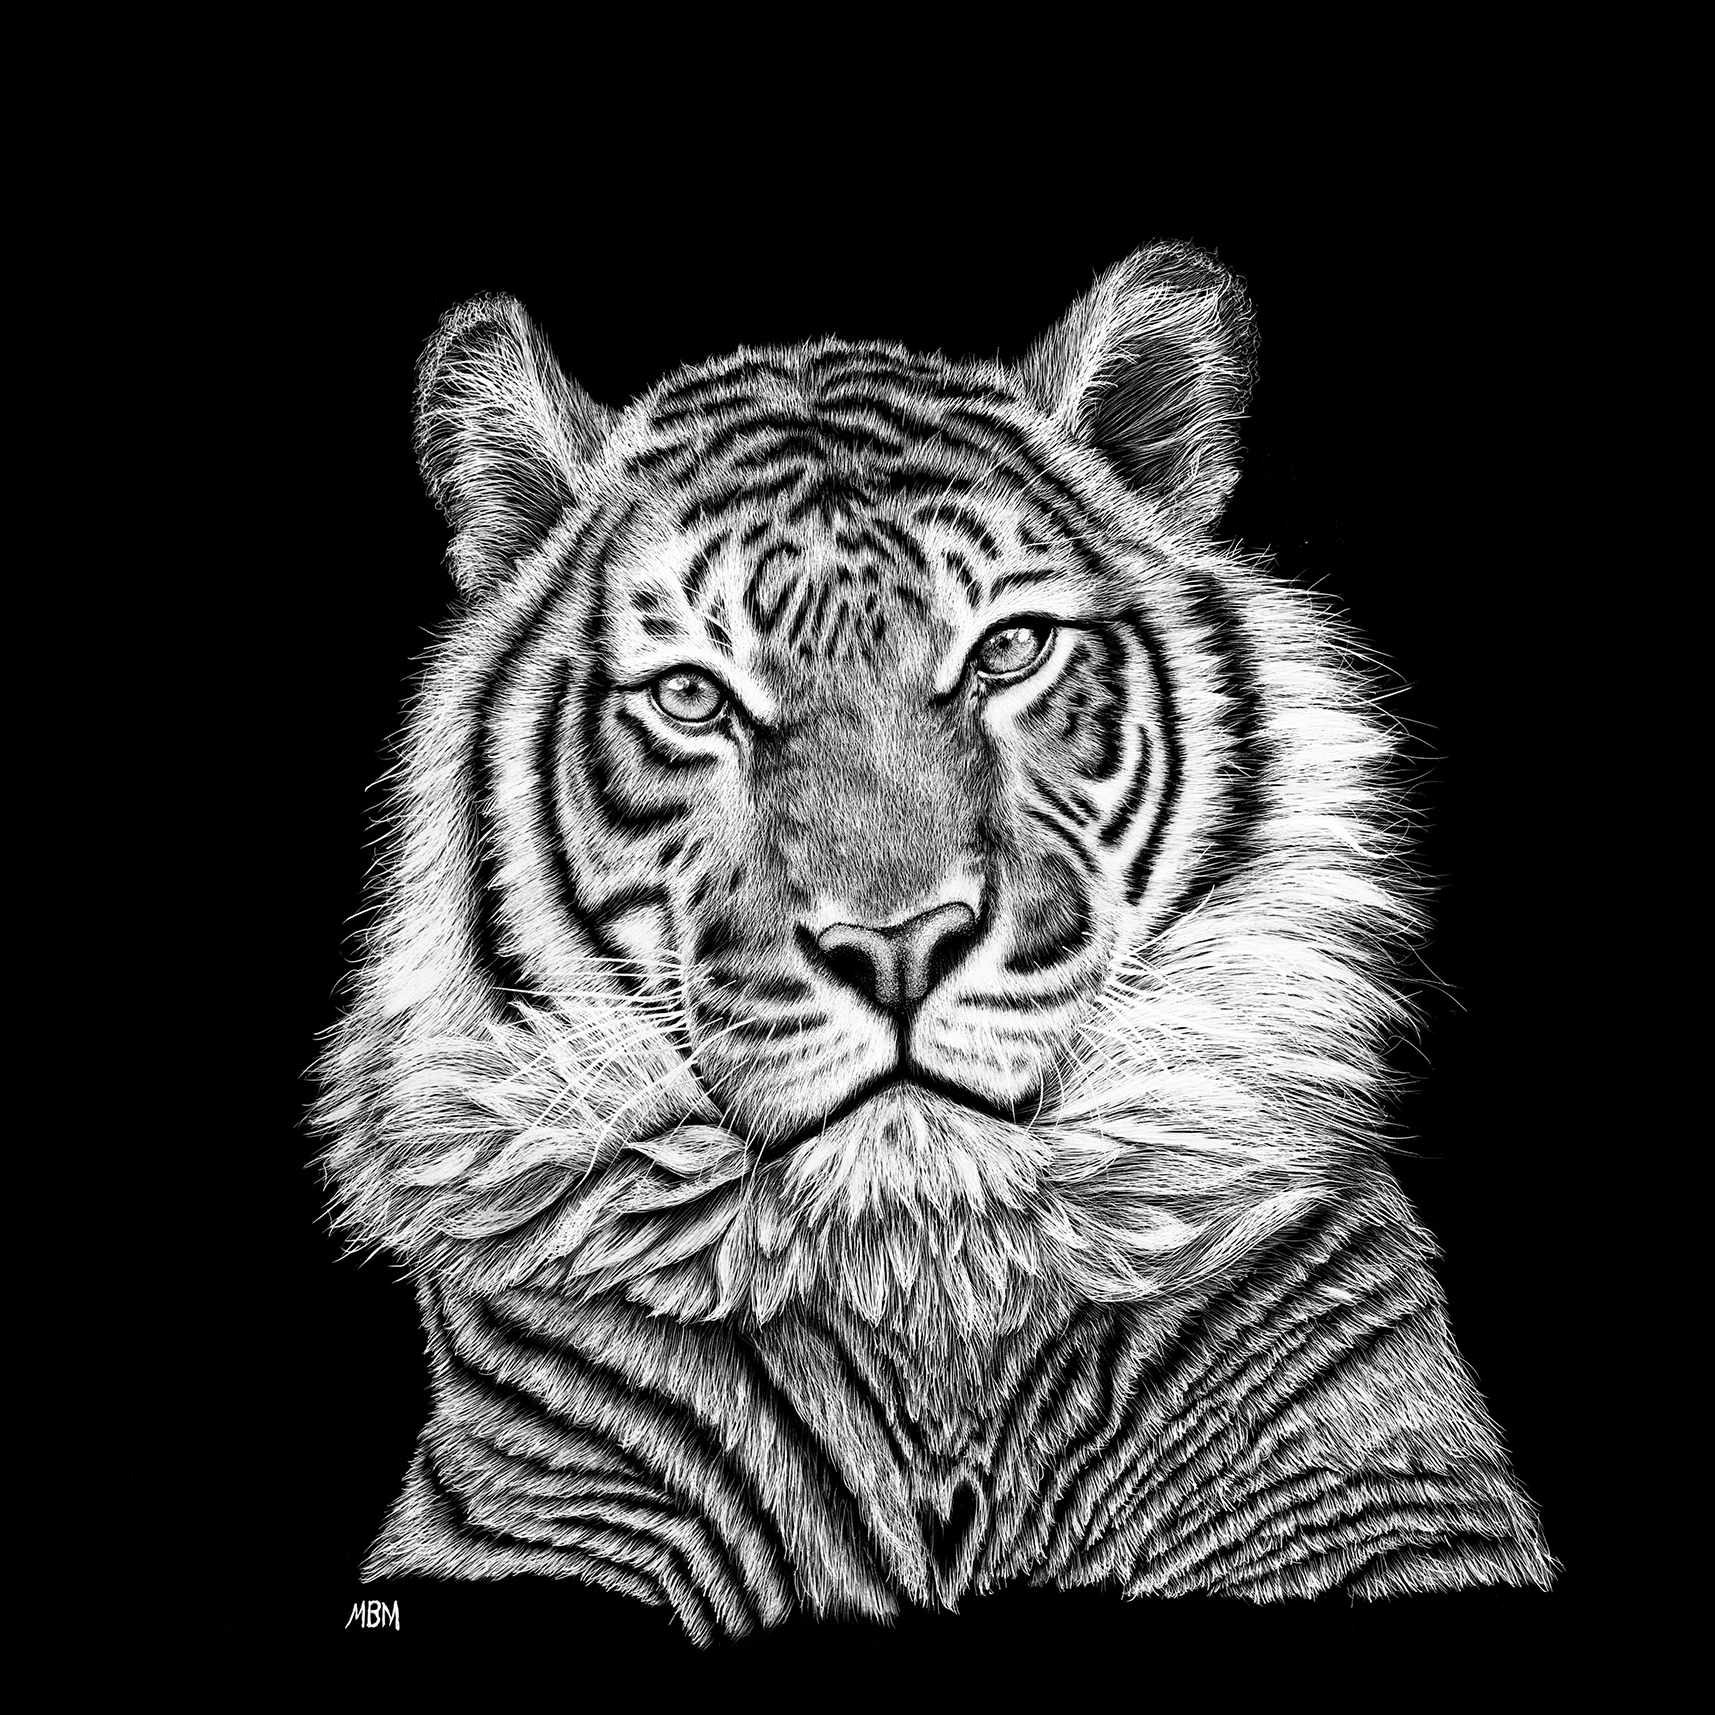 tiger july 2018 P Hedges image-web